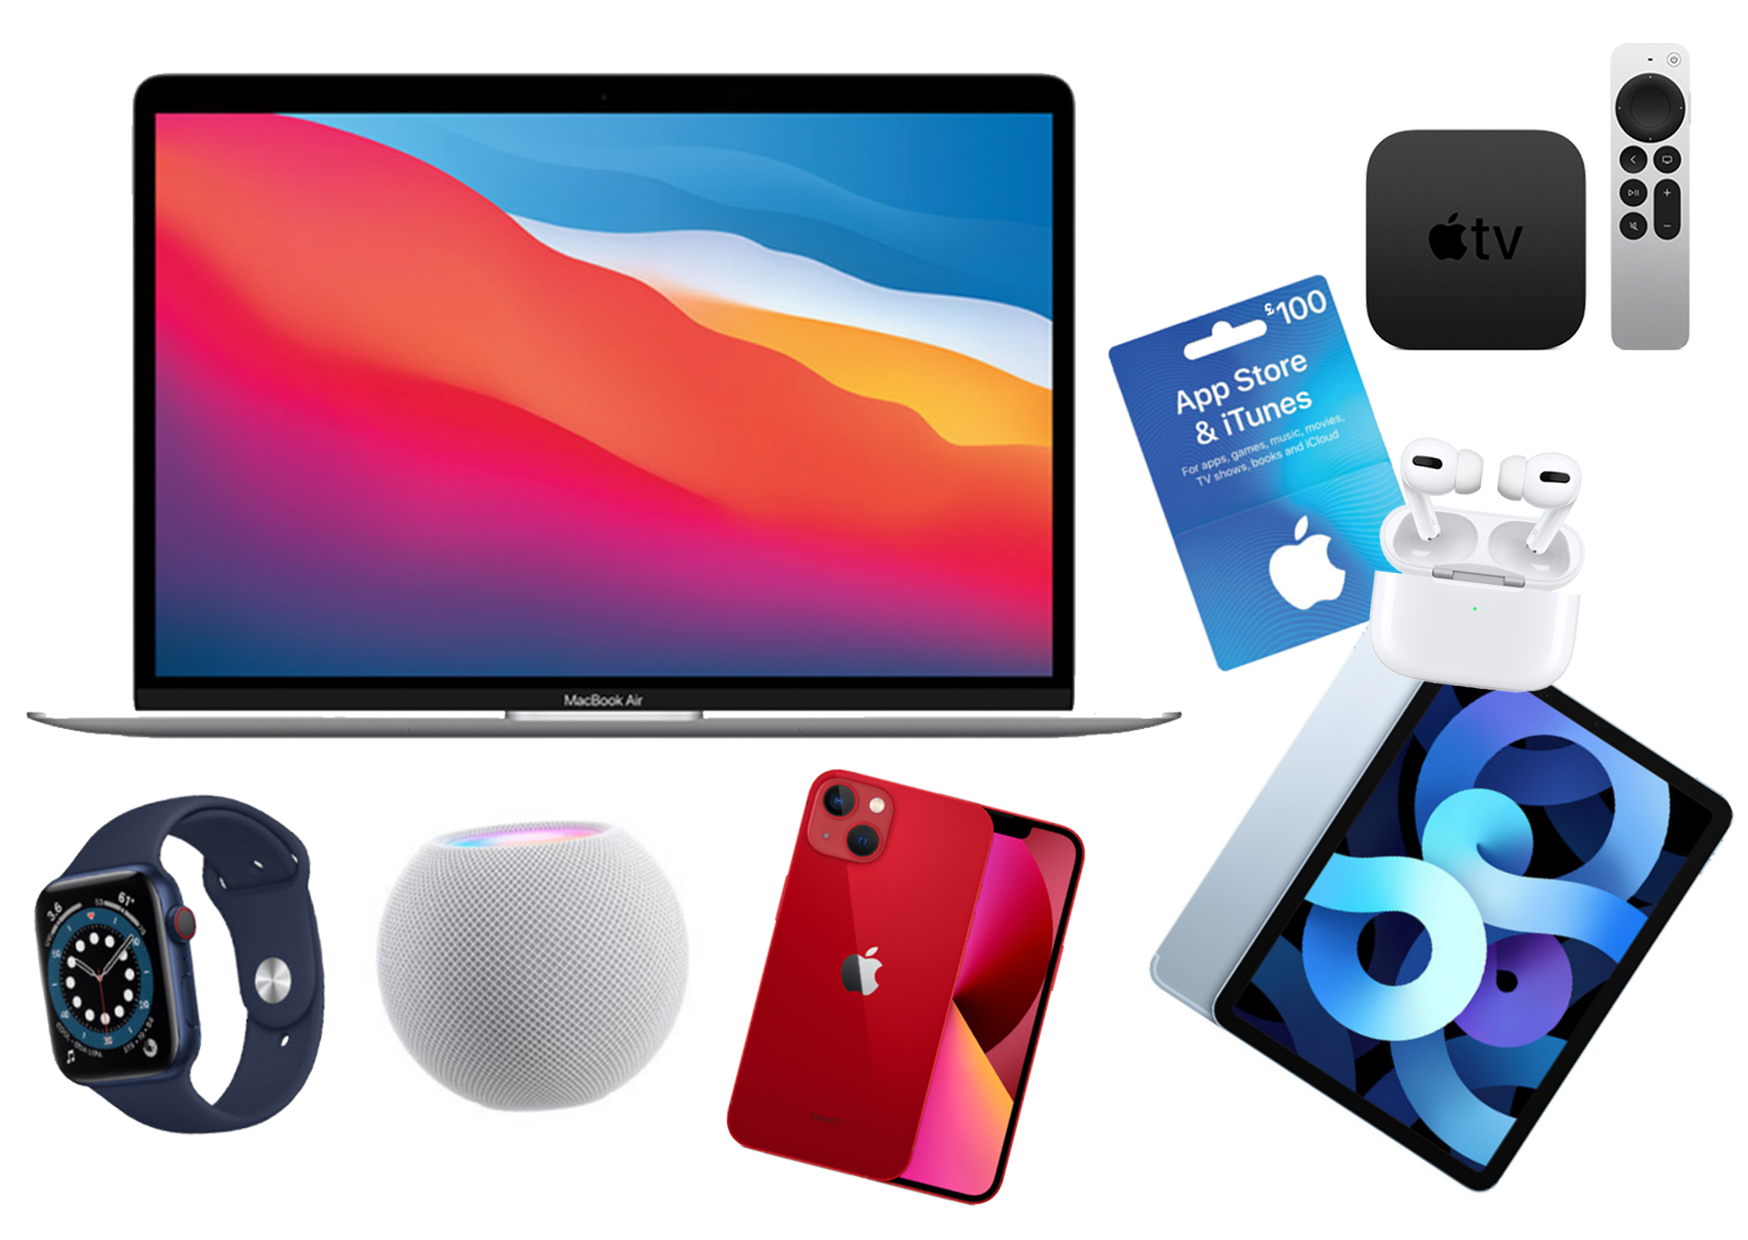 Win a fantastic Apple bundle including the newly announced iPhone 13!